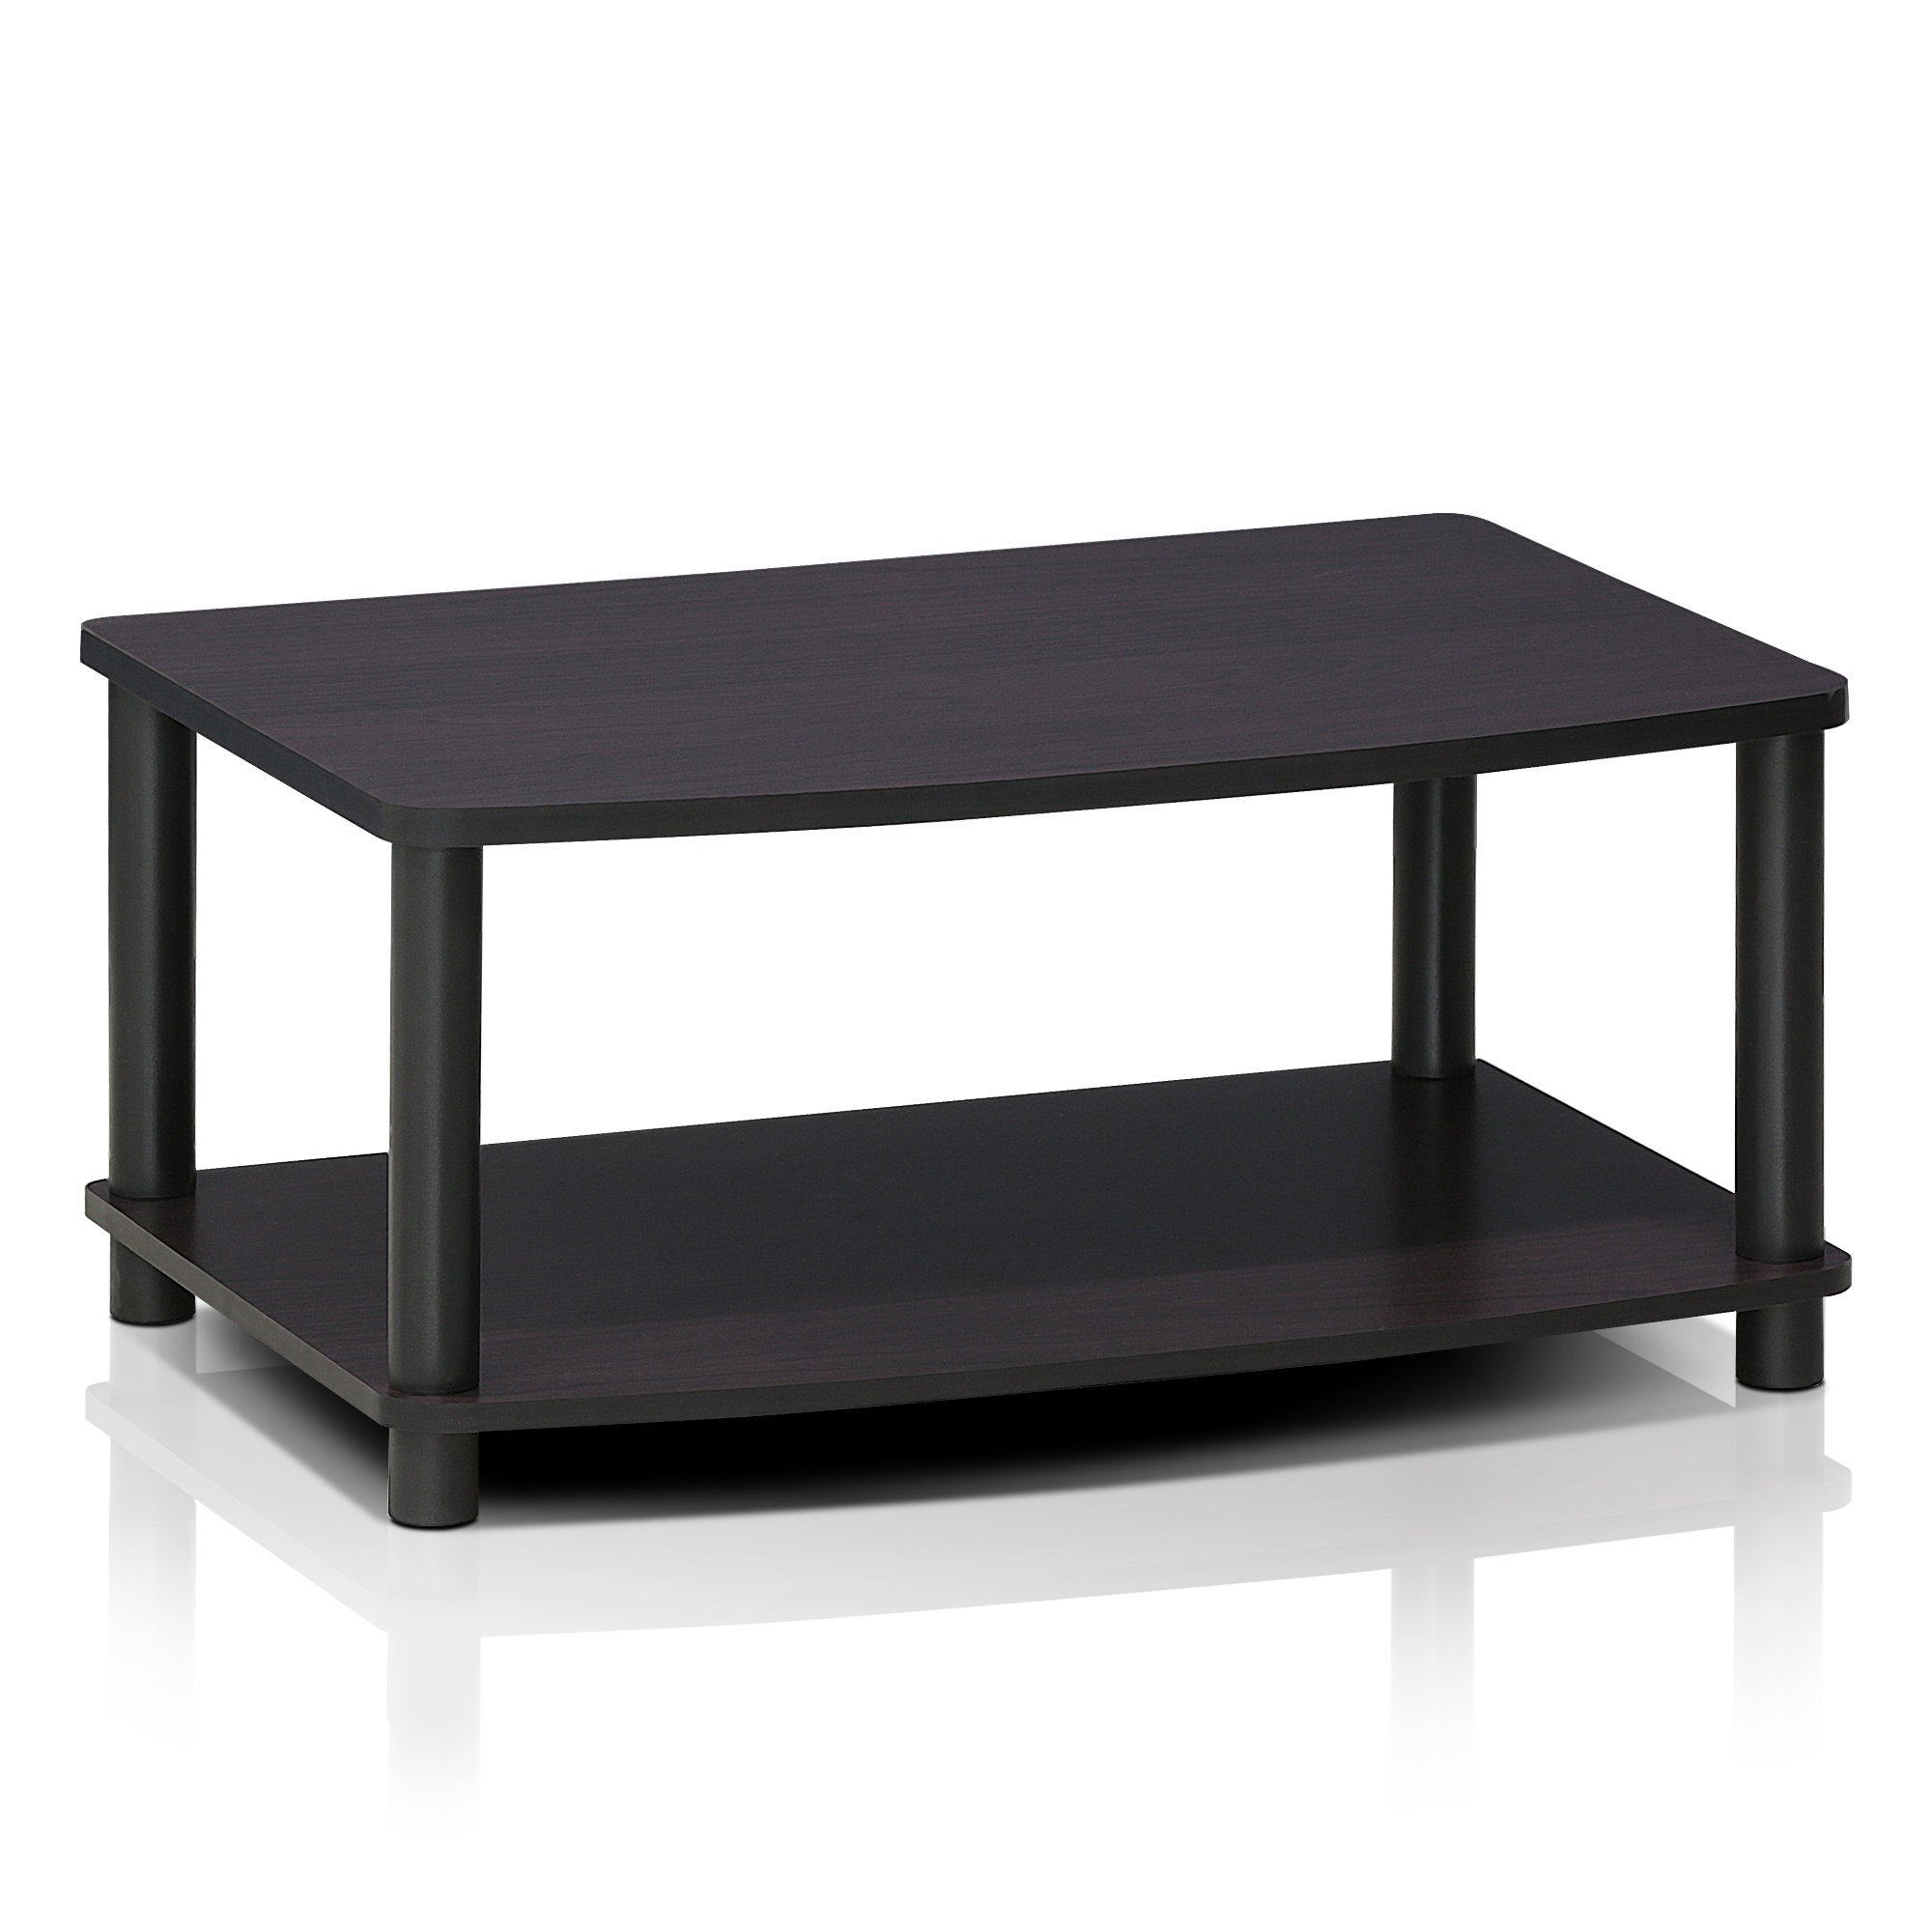 Furinno 13191DWN Turn-N-Tube No Tools 2-Tier Elevated TV Stands